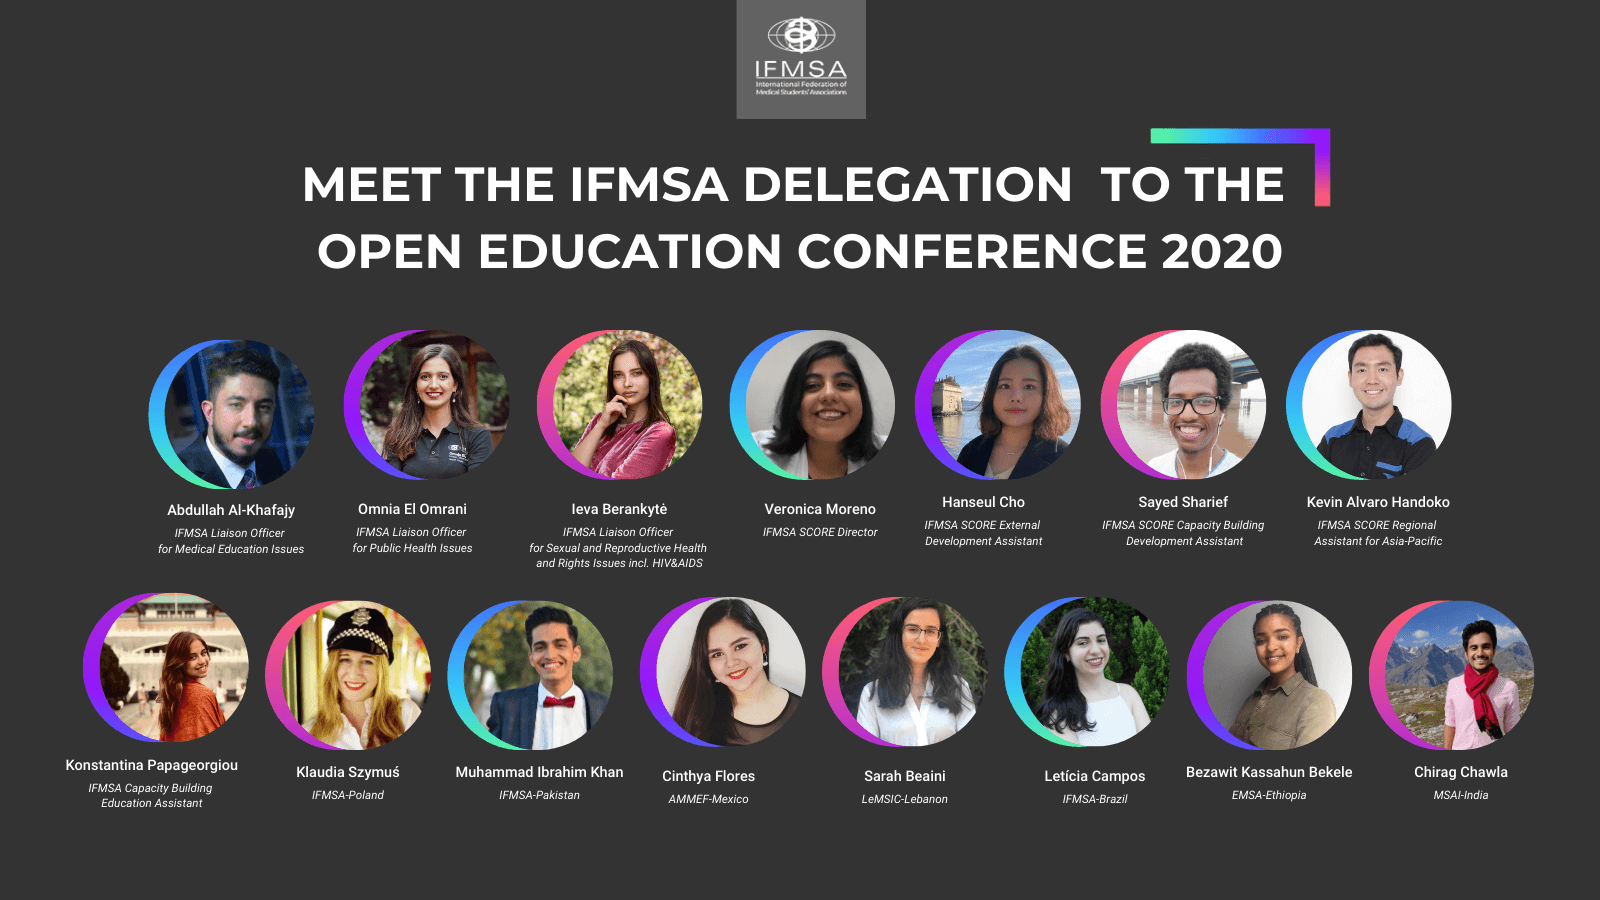 IFMSA Delegation at Open Education Conference 2020